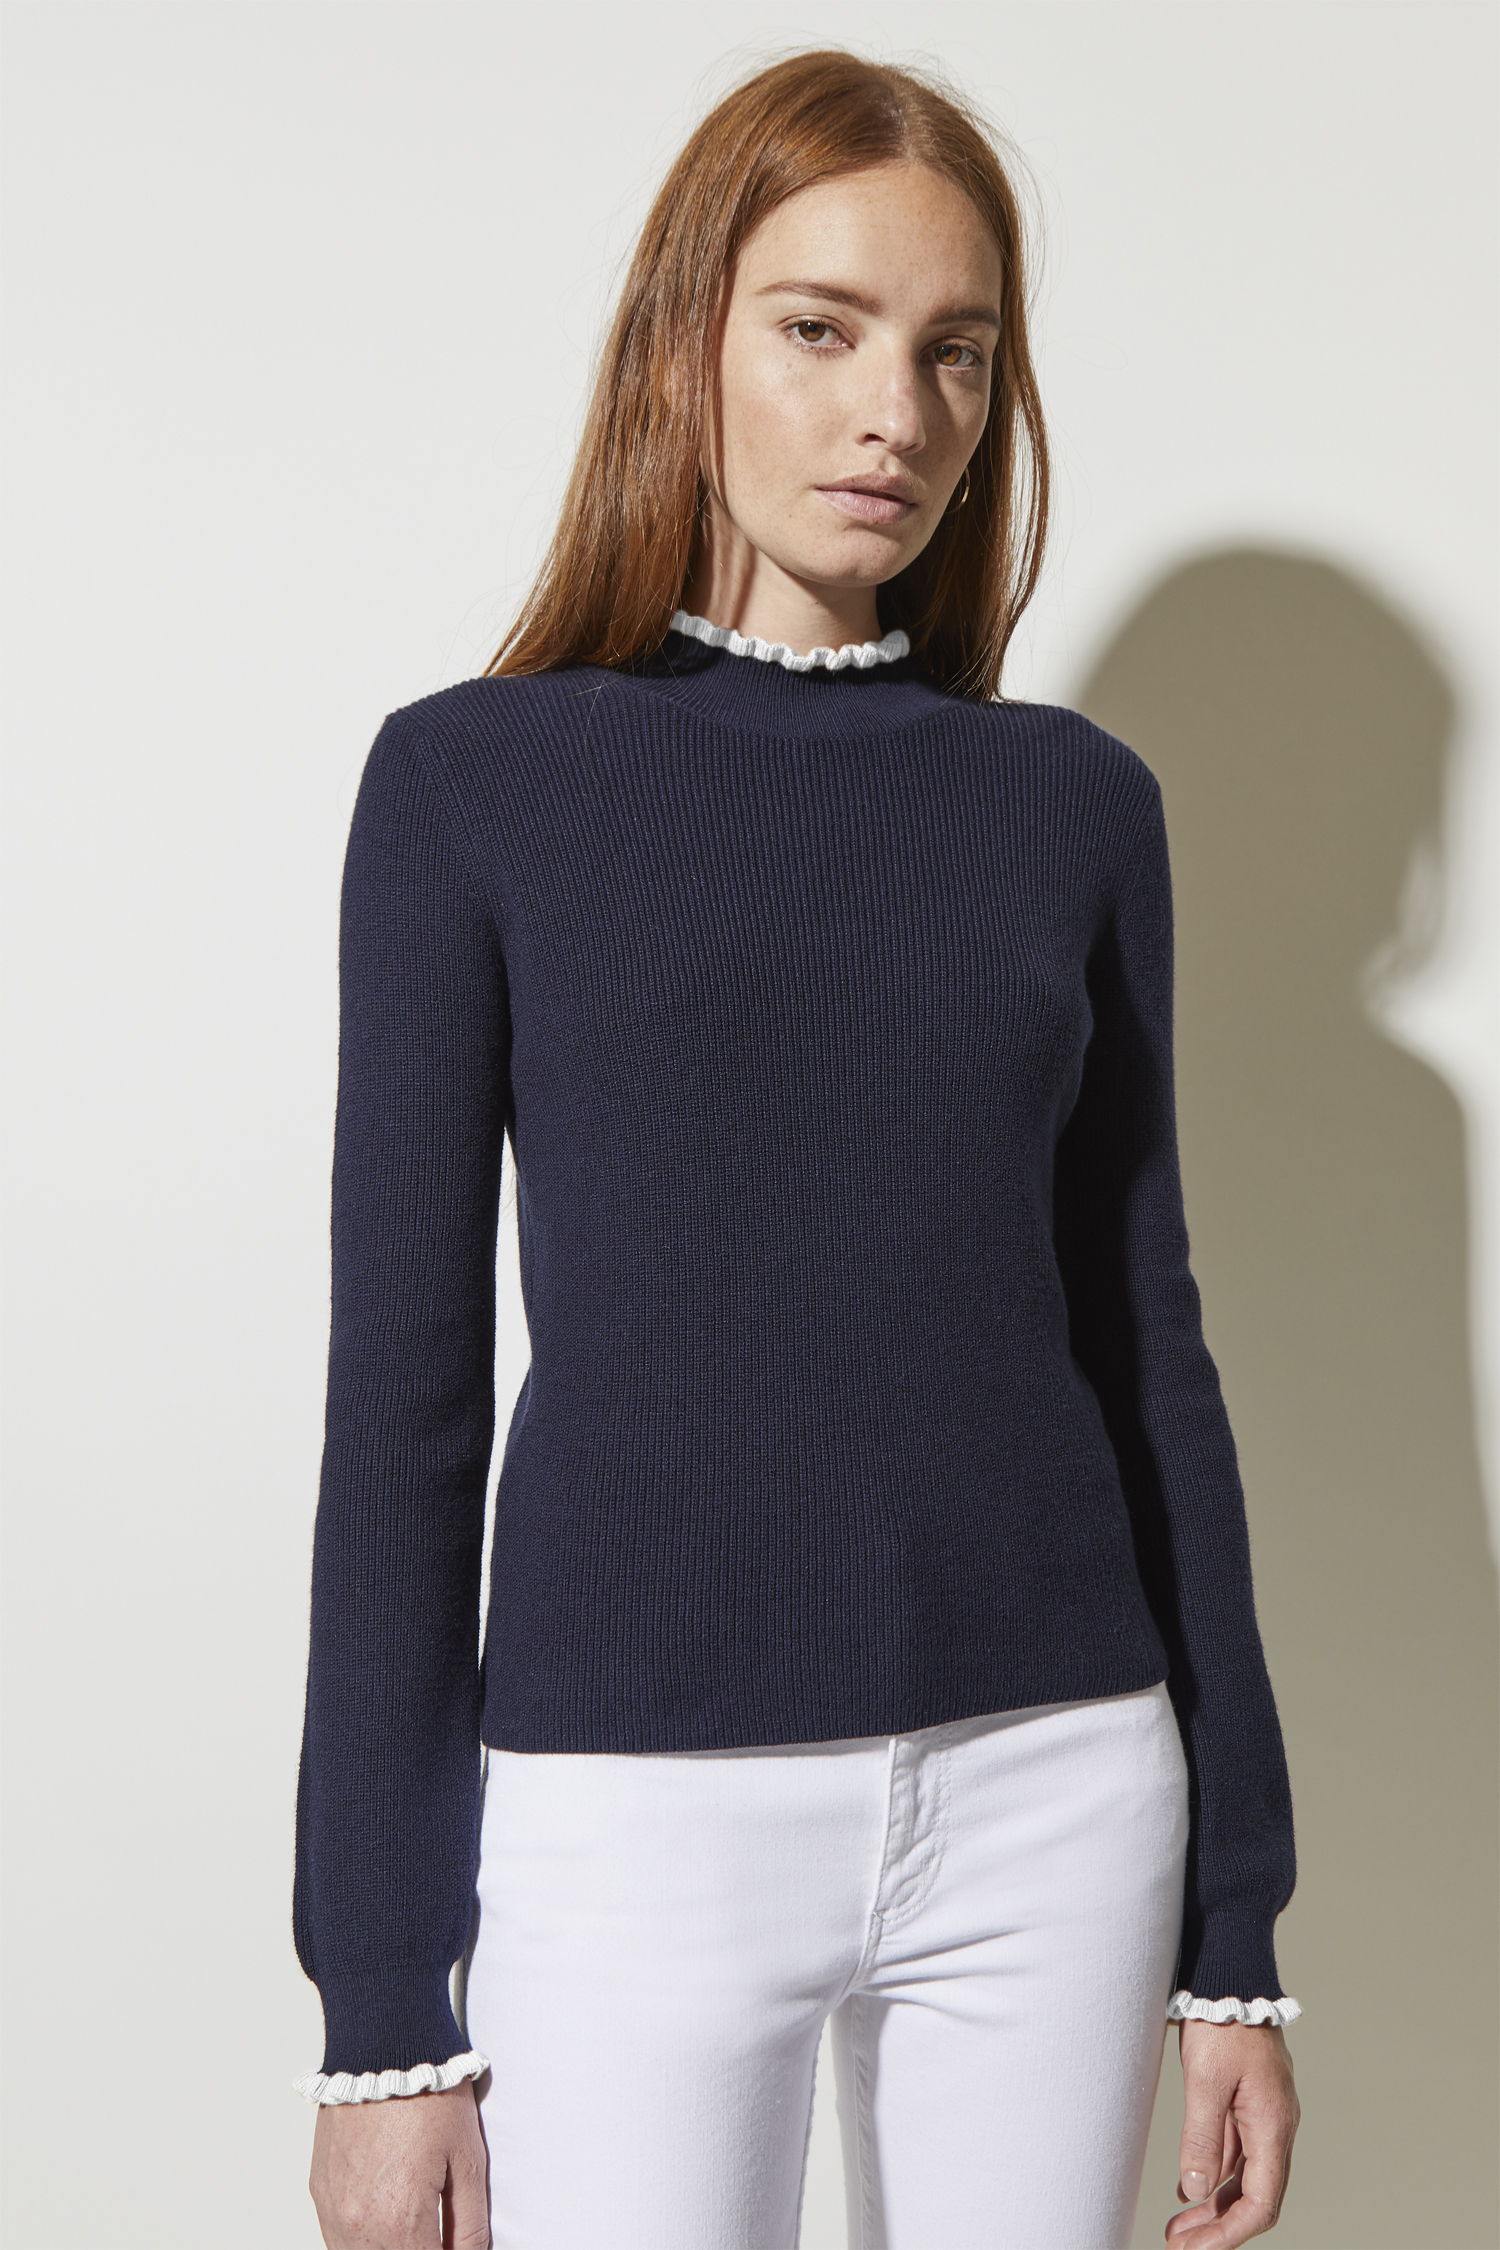 women's winter jumpers